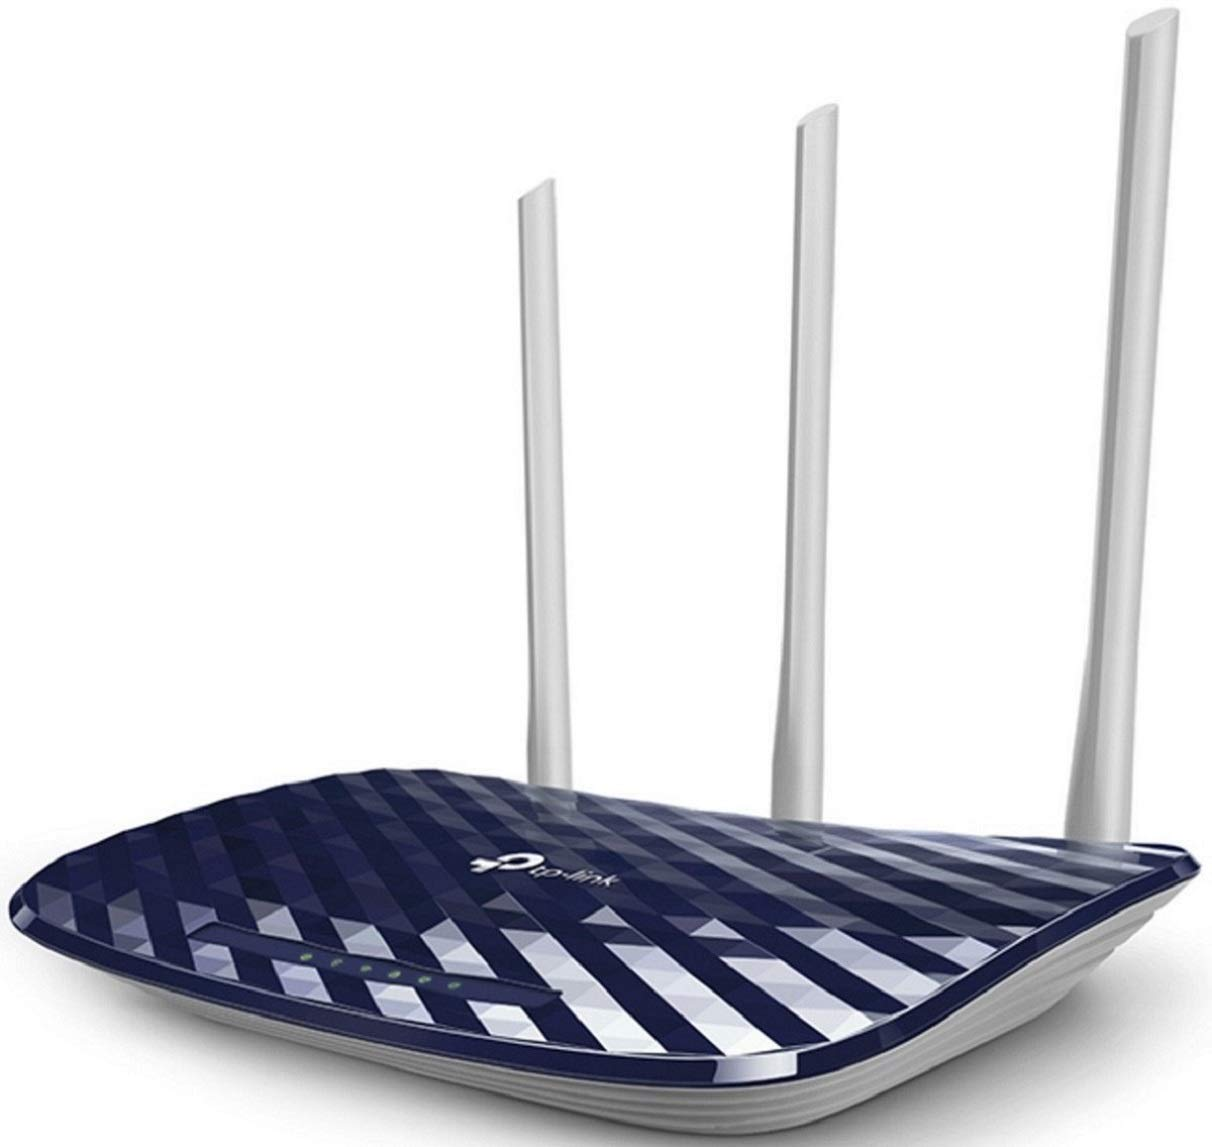 WiFi routers for daily use in office or home.